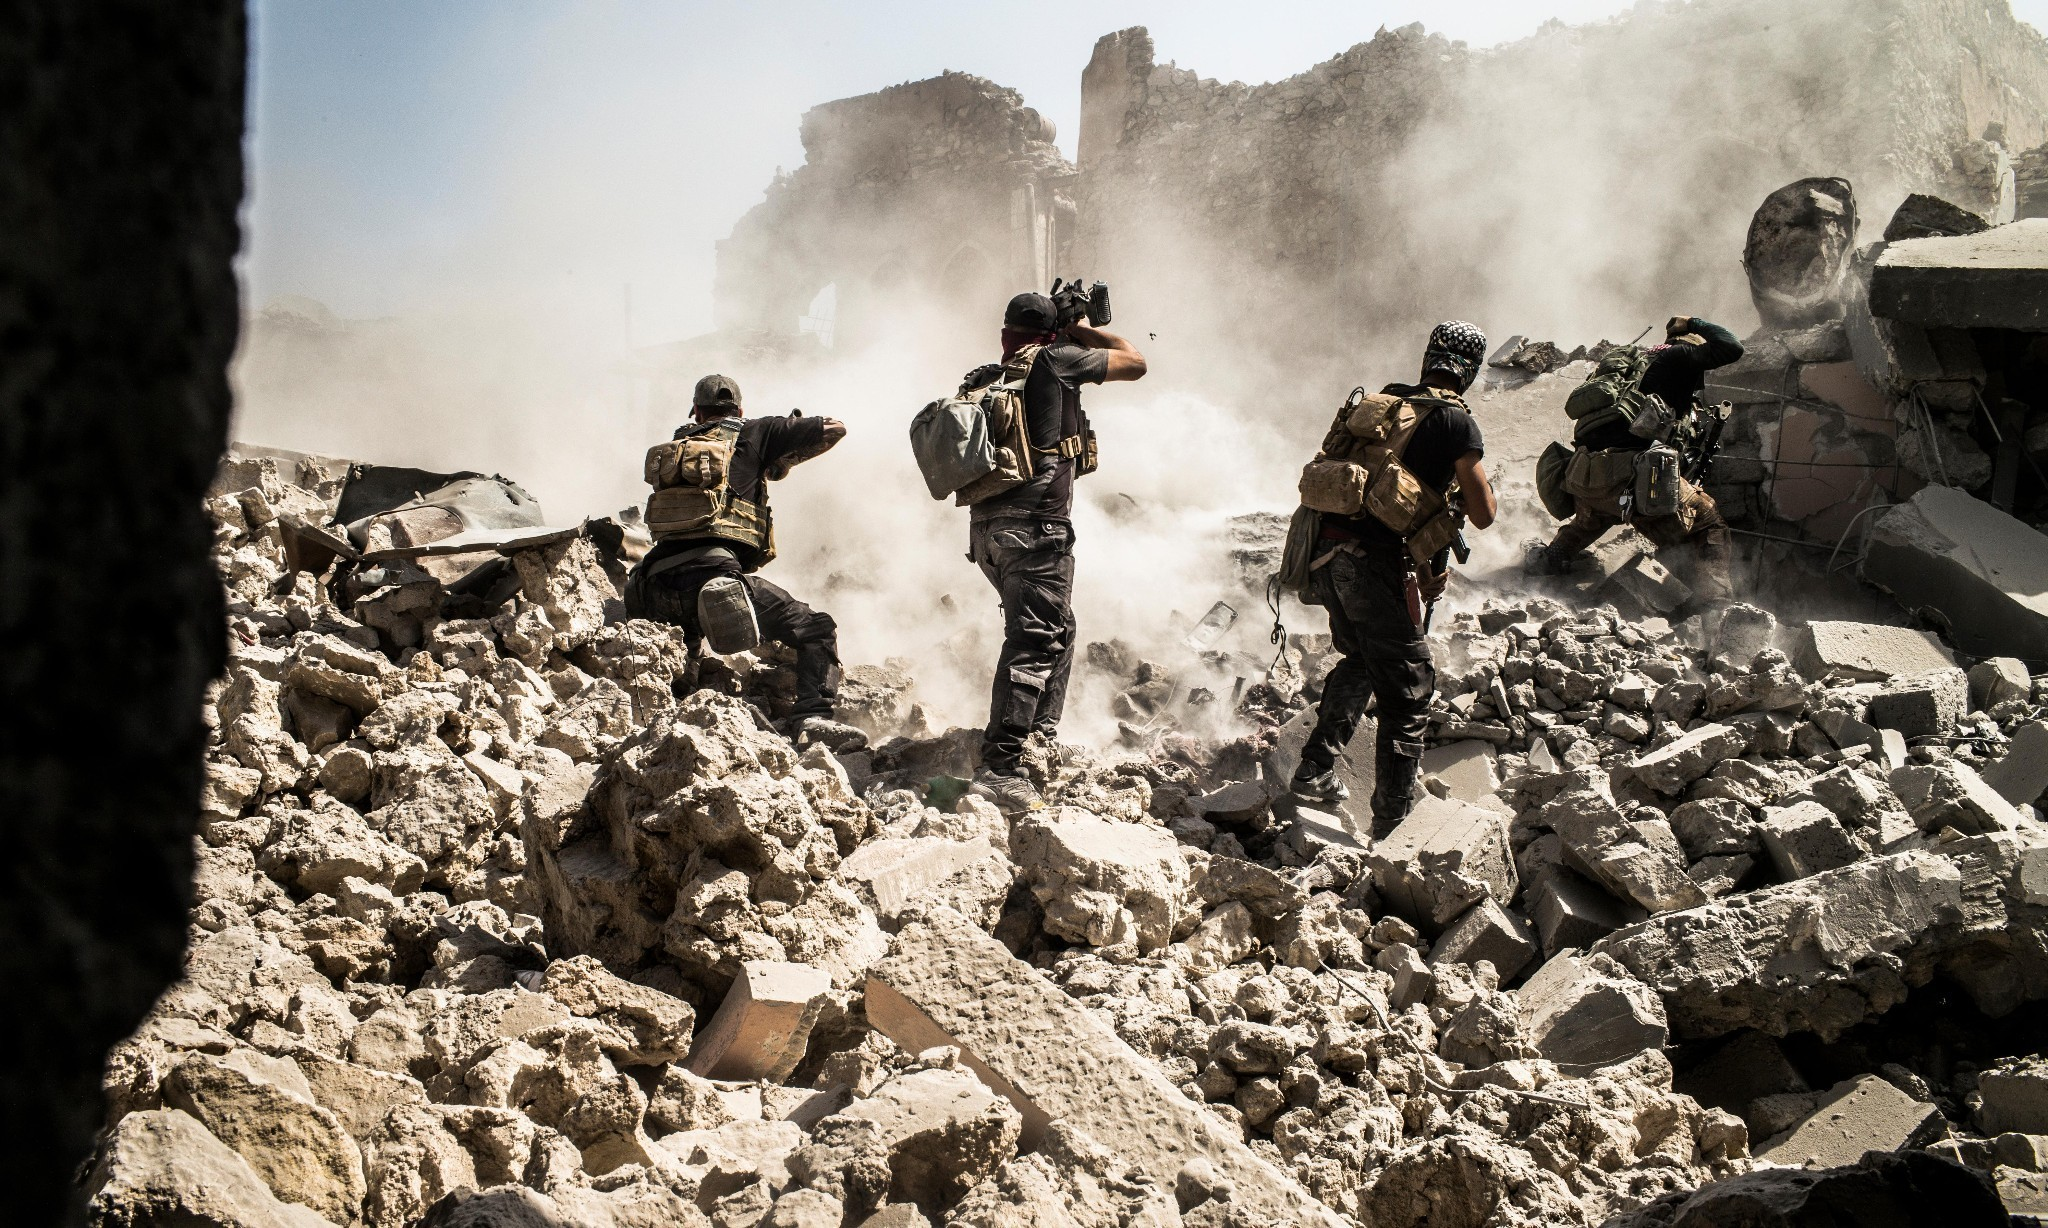 After the liberation of Mosul, an orgy of killing